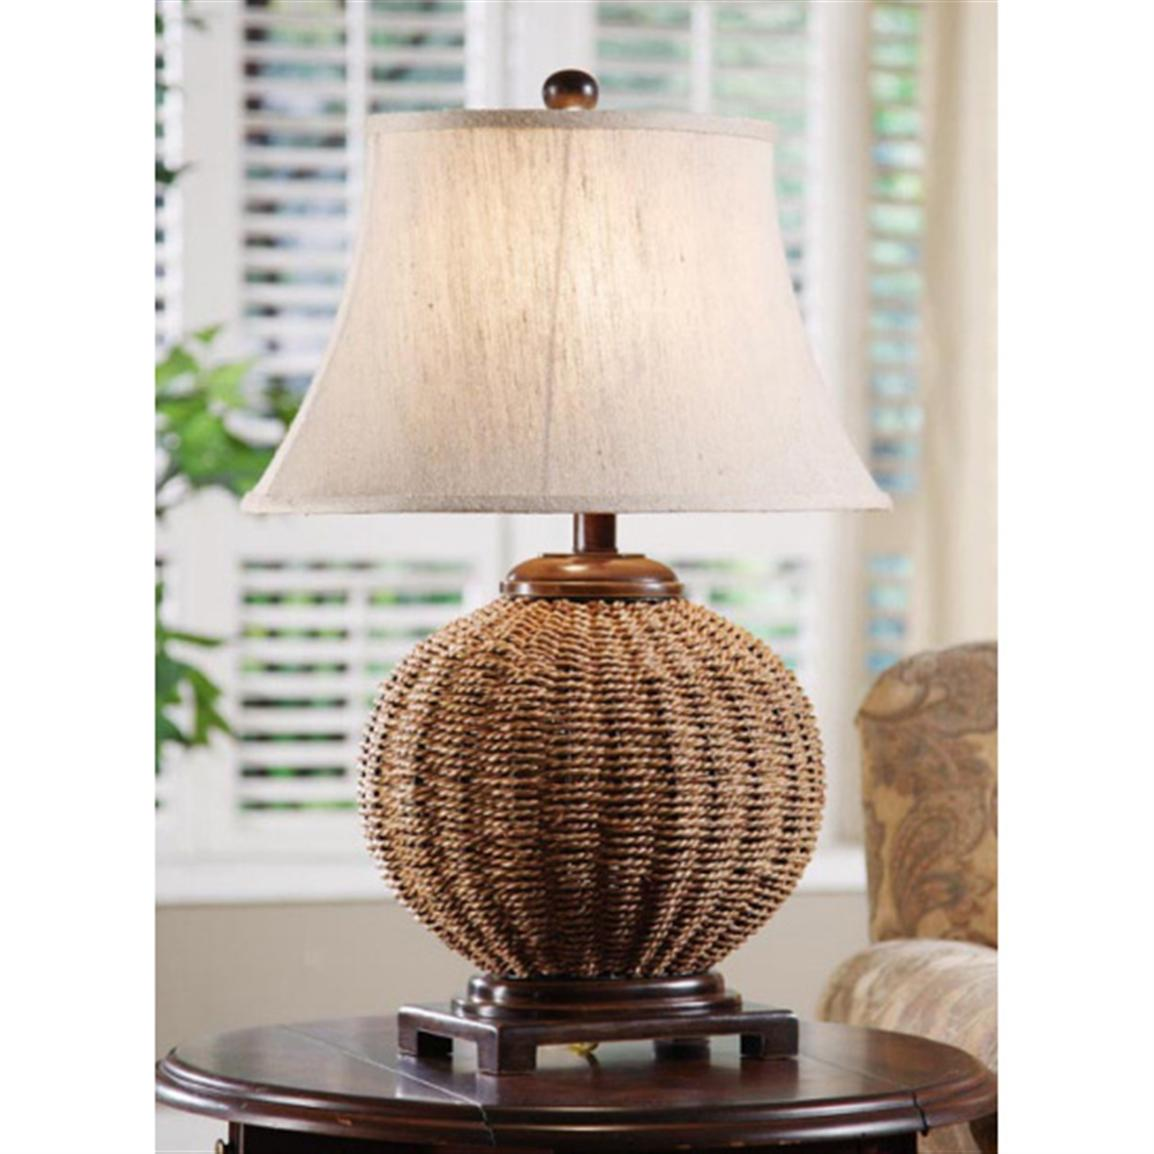 Great SImple Wicker Table Lamps On Small Round Table Side